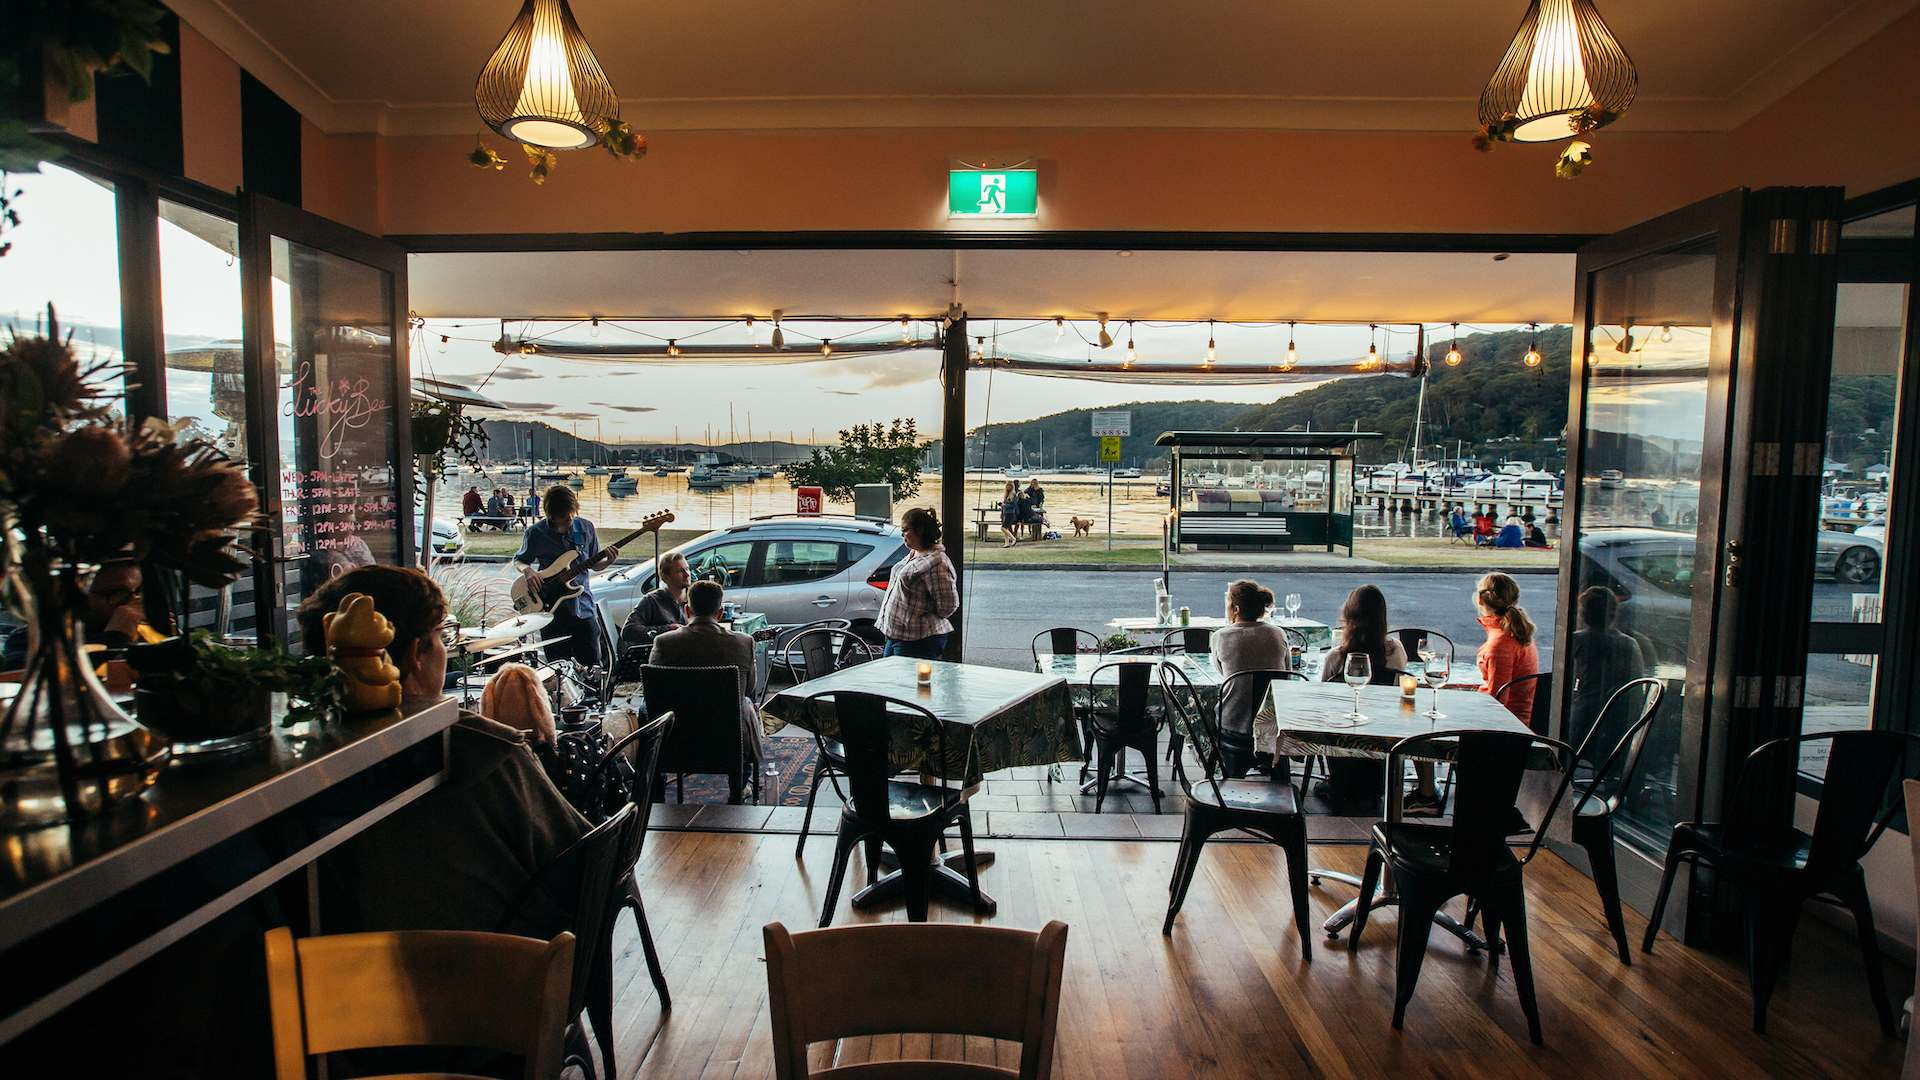 Sydney's Best Out-of-Town Restaurants, Cafes and Bars Worth a Weekend Road Trip